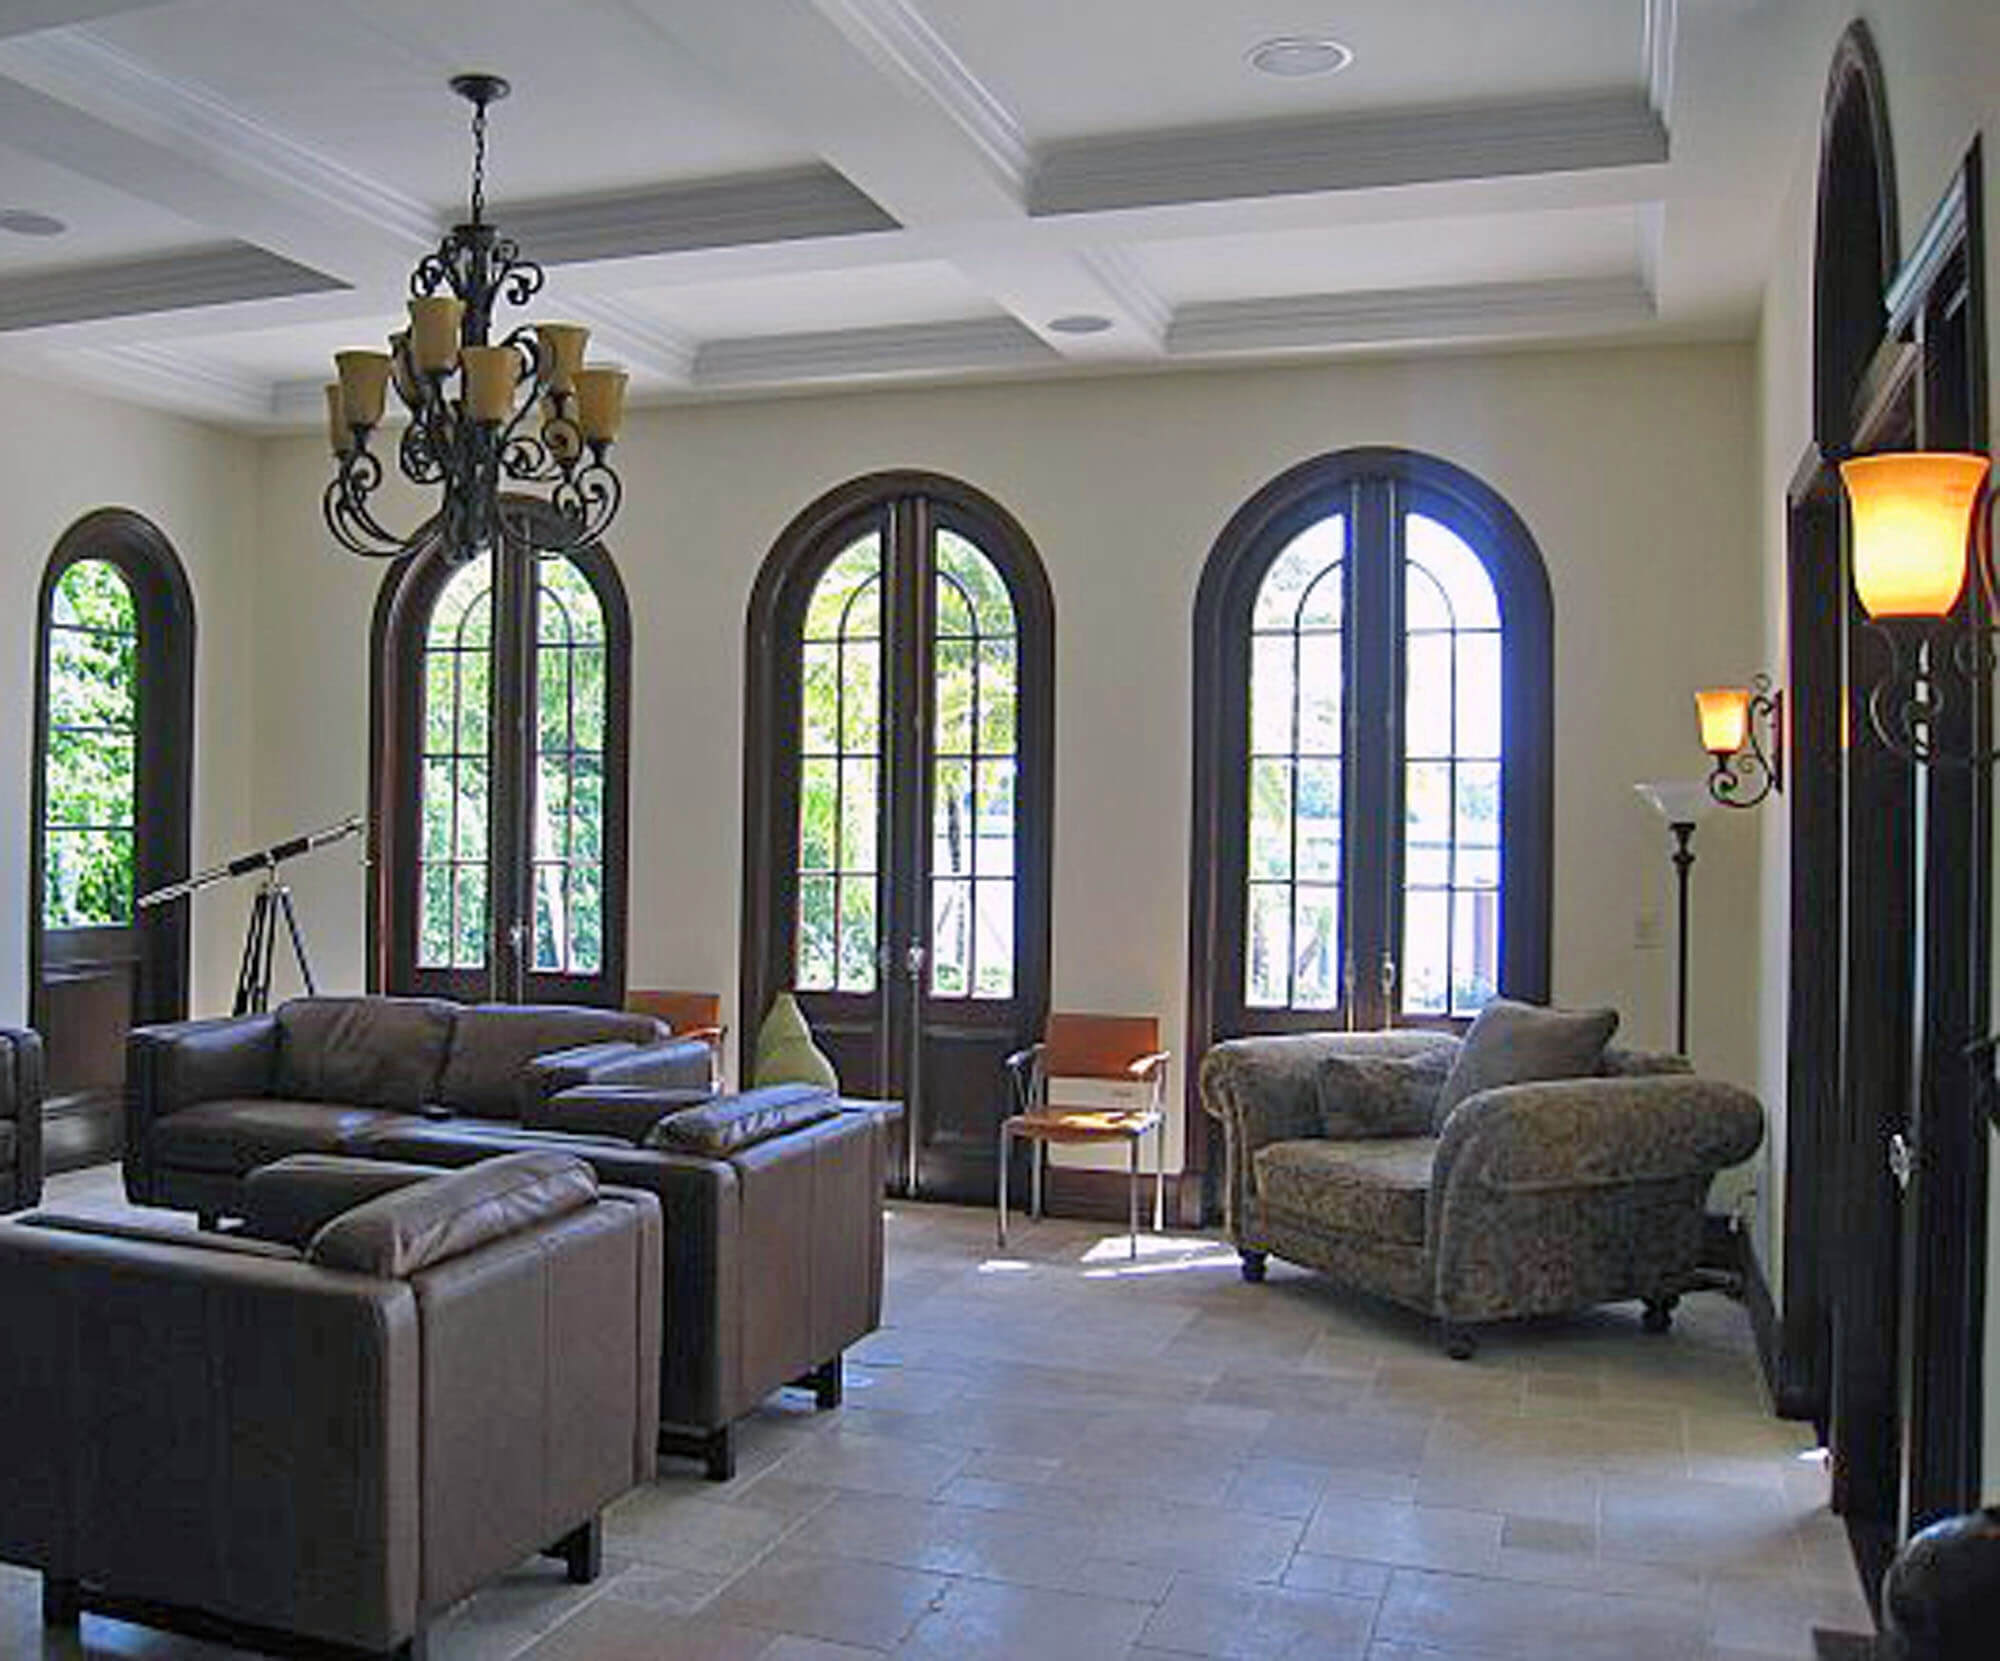 BAL HARBOUR MAHOGANY ARCHED FRENCH DOORS.